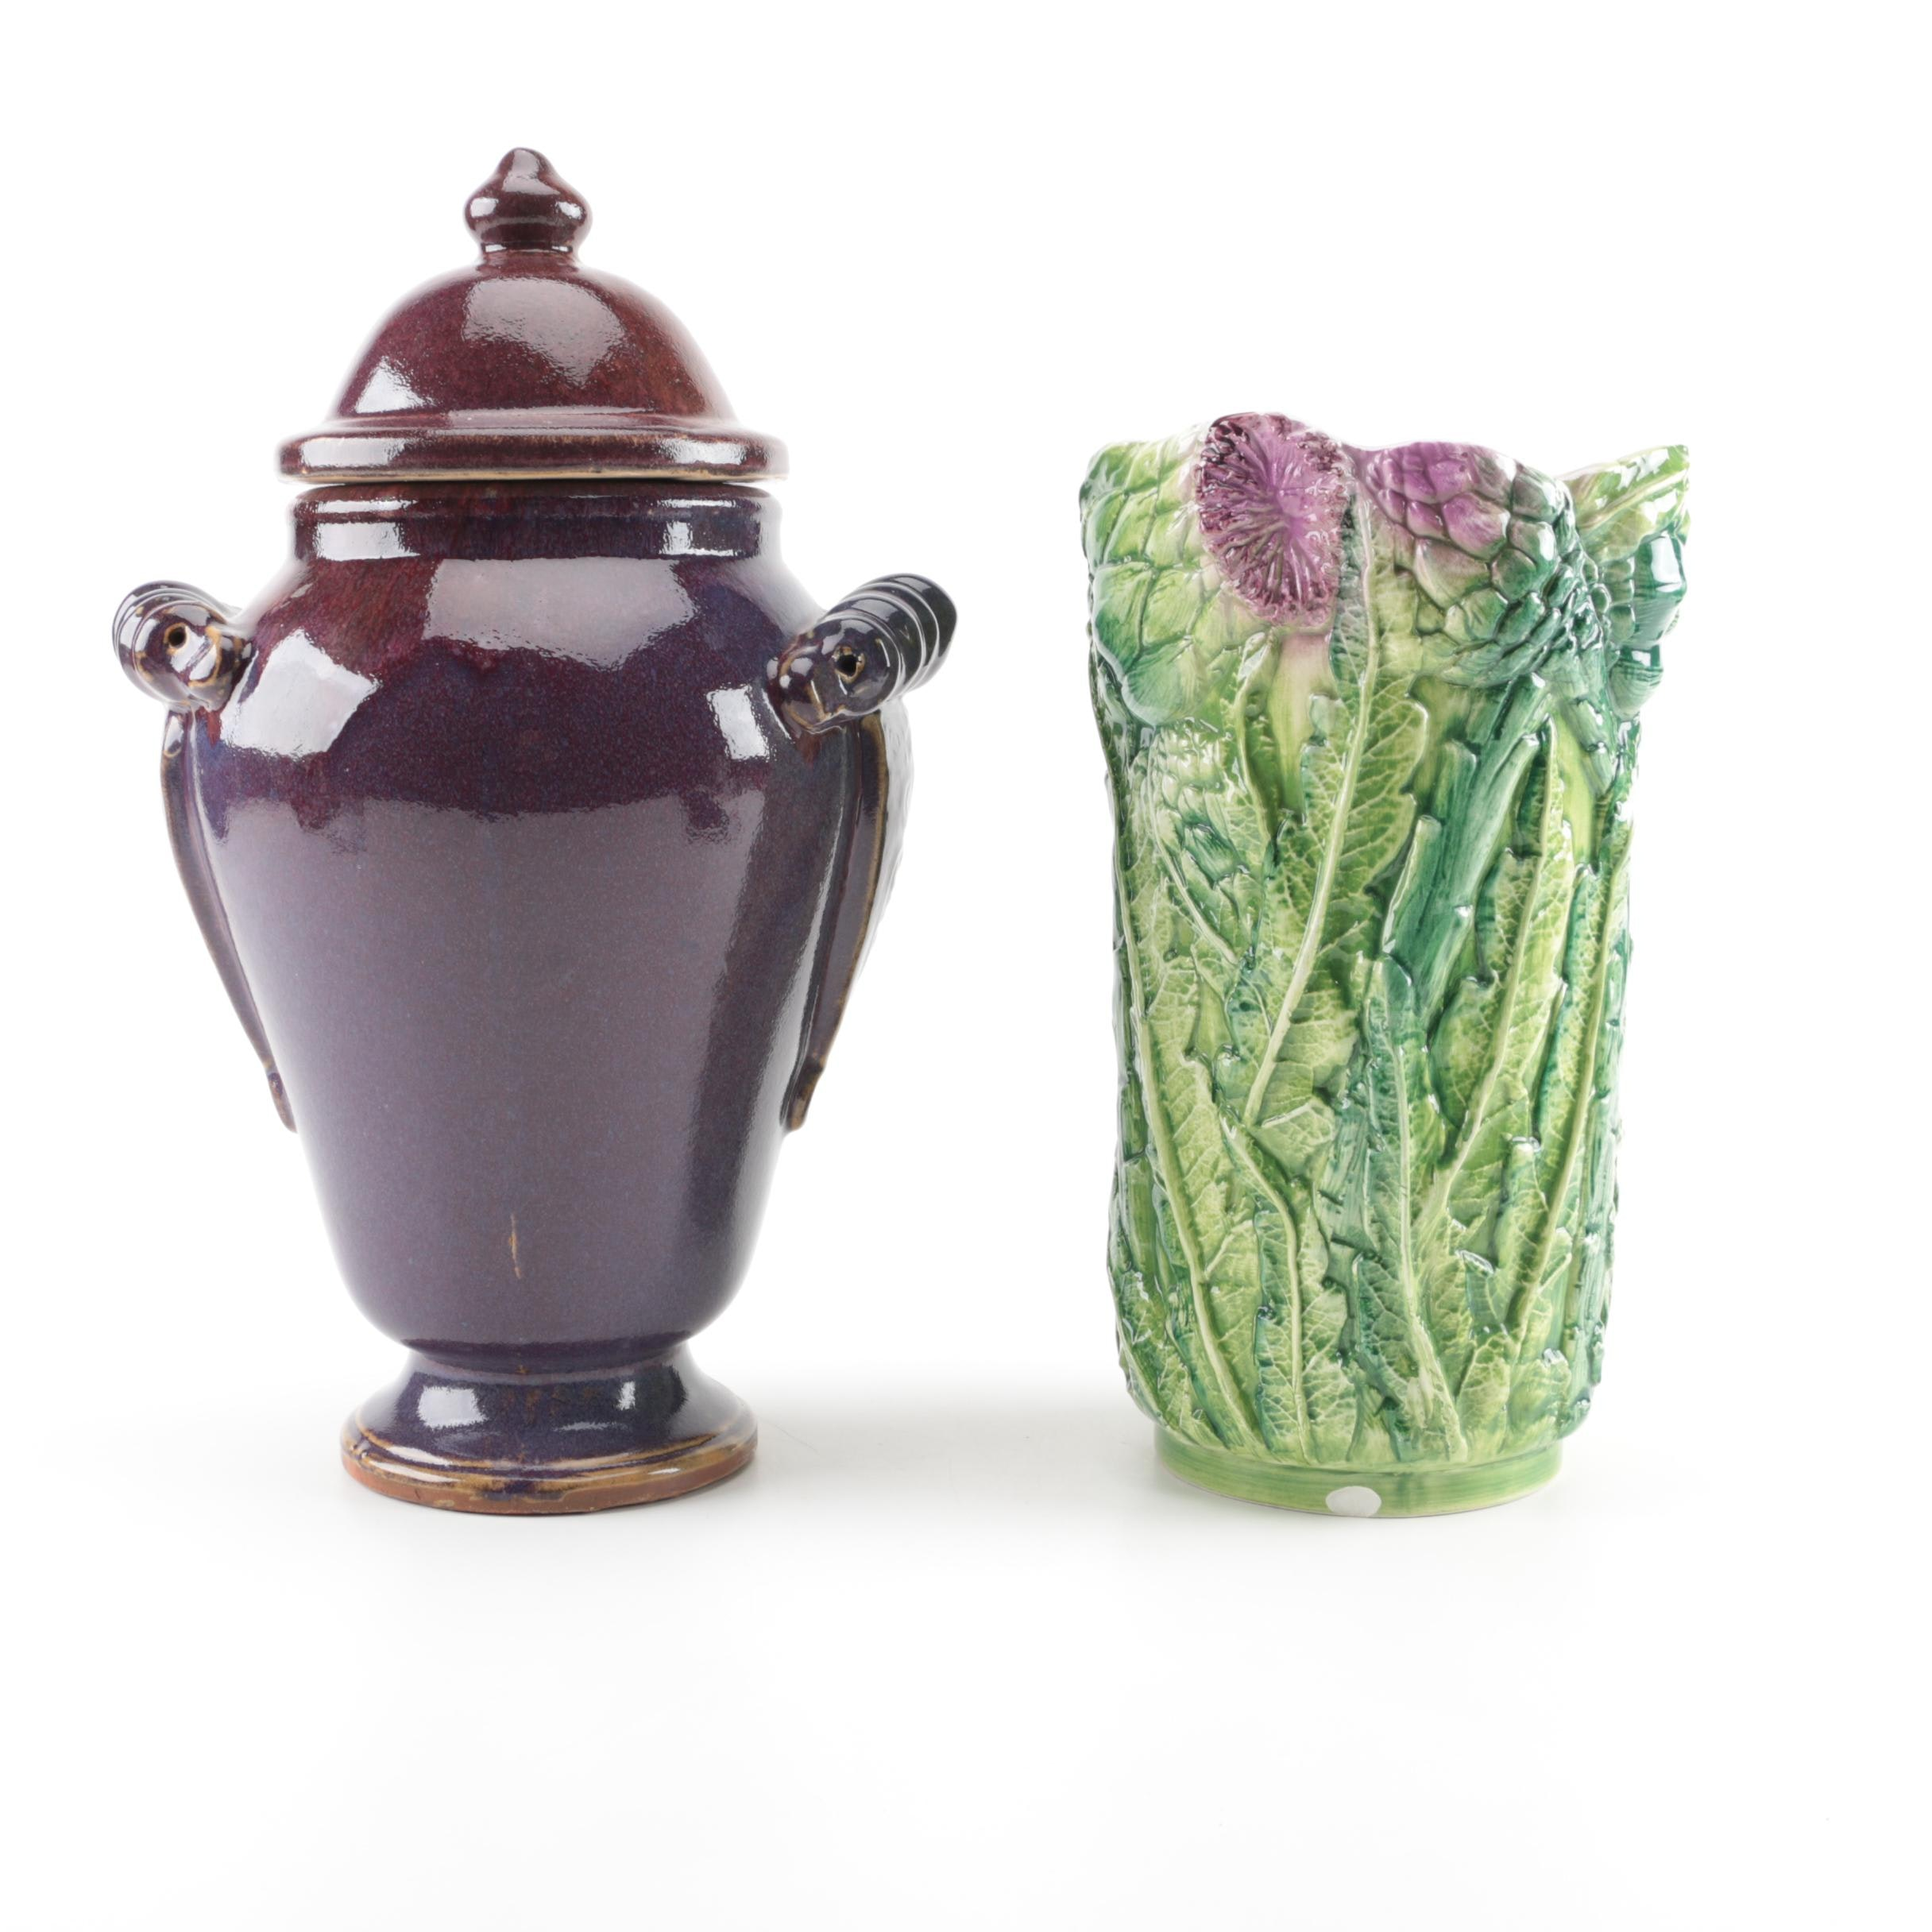 Earthenware Urn and Ceramic vase